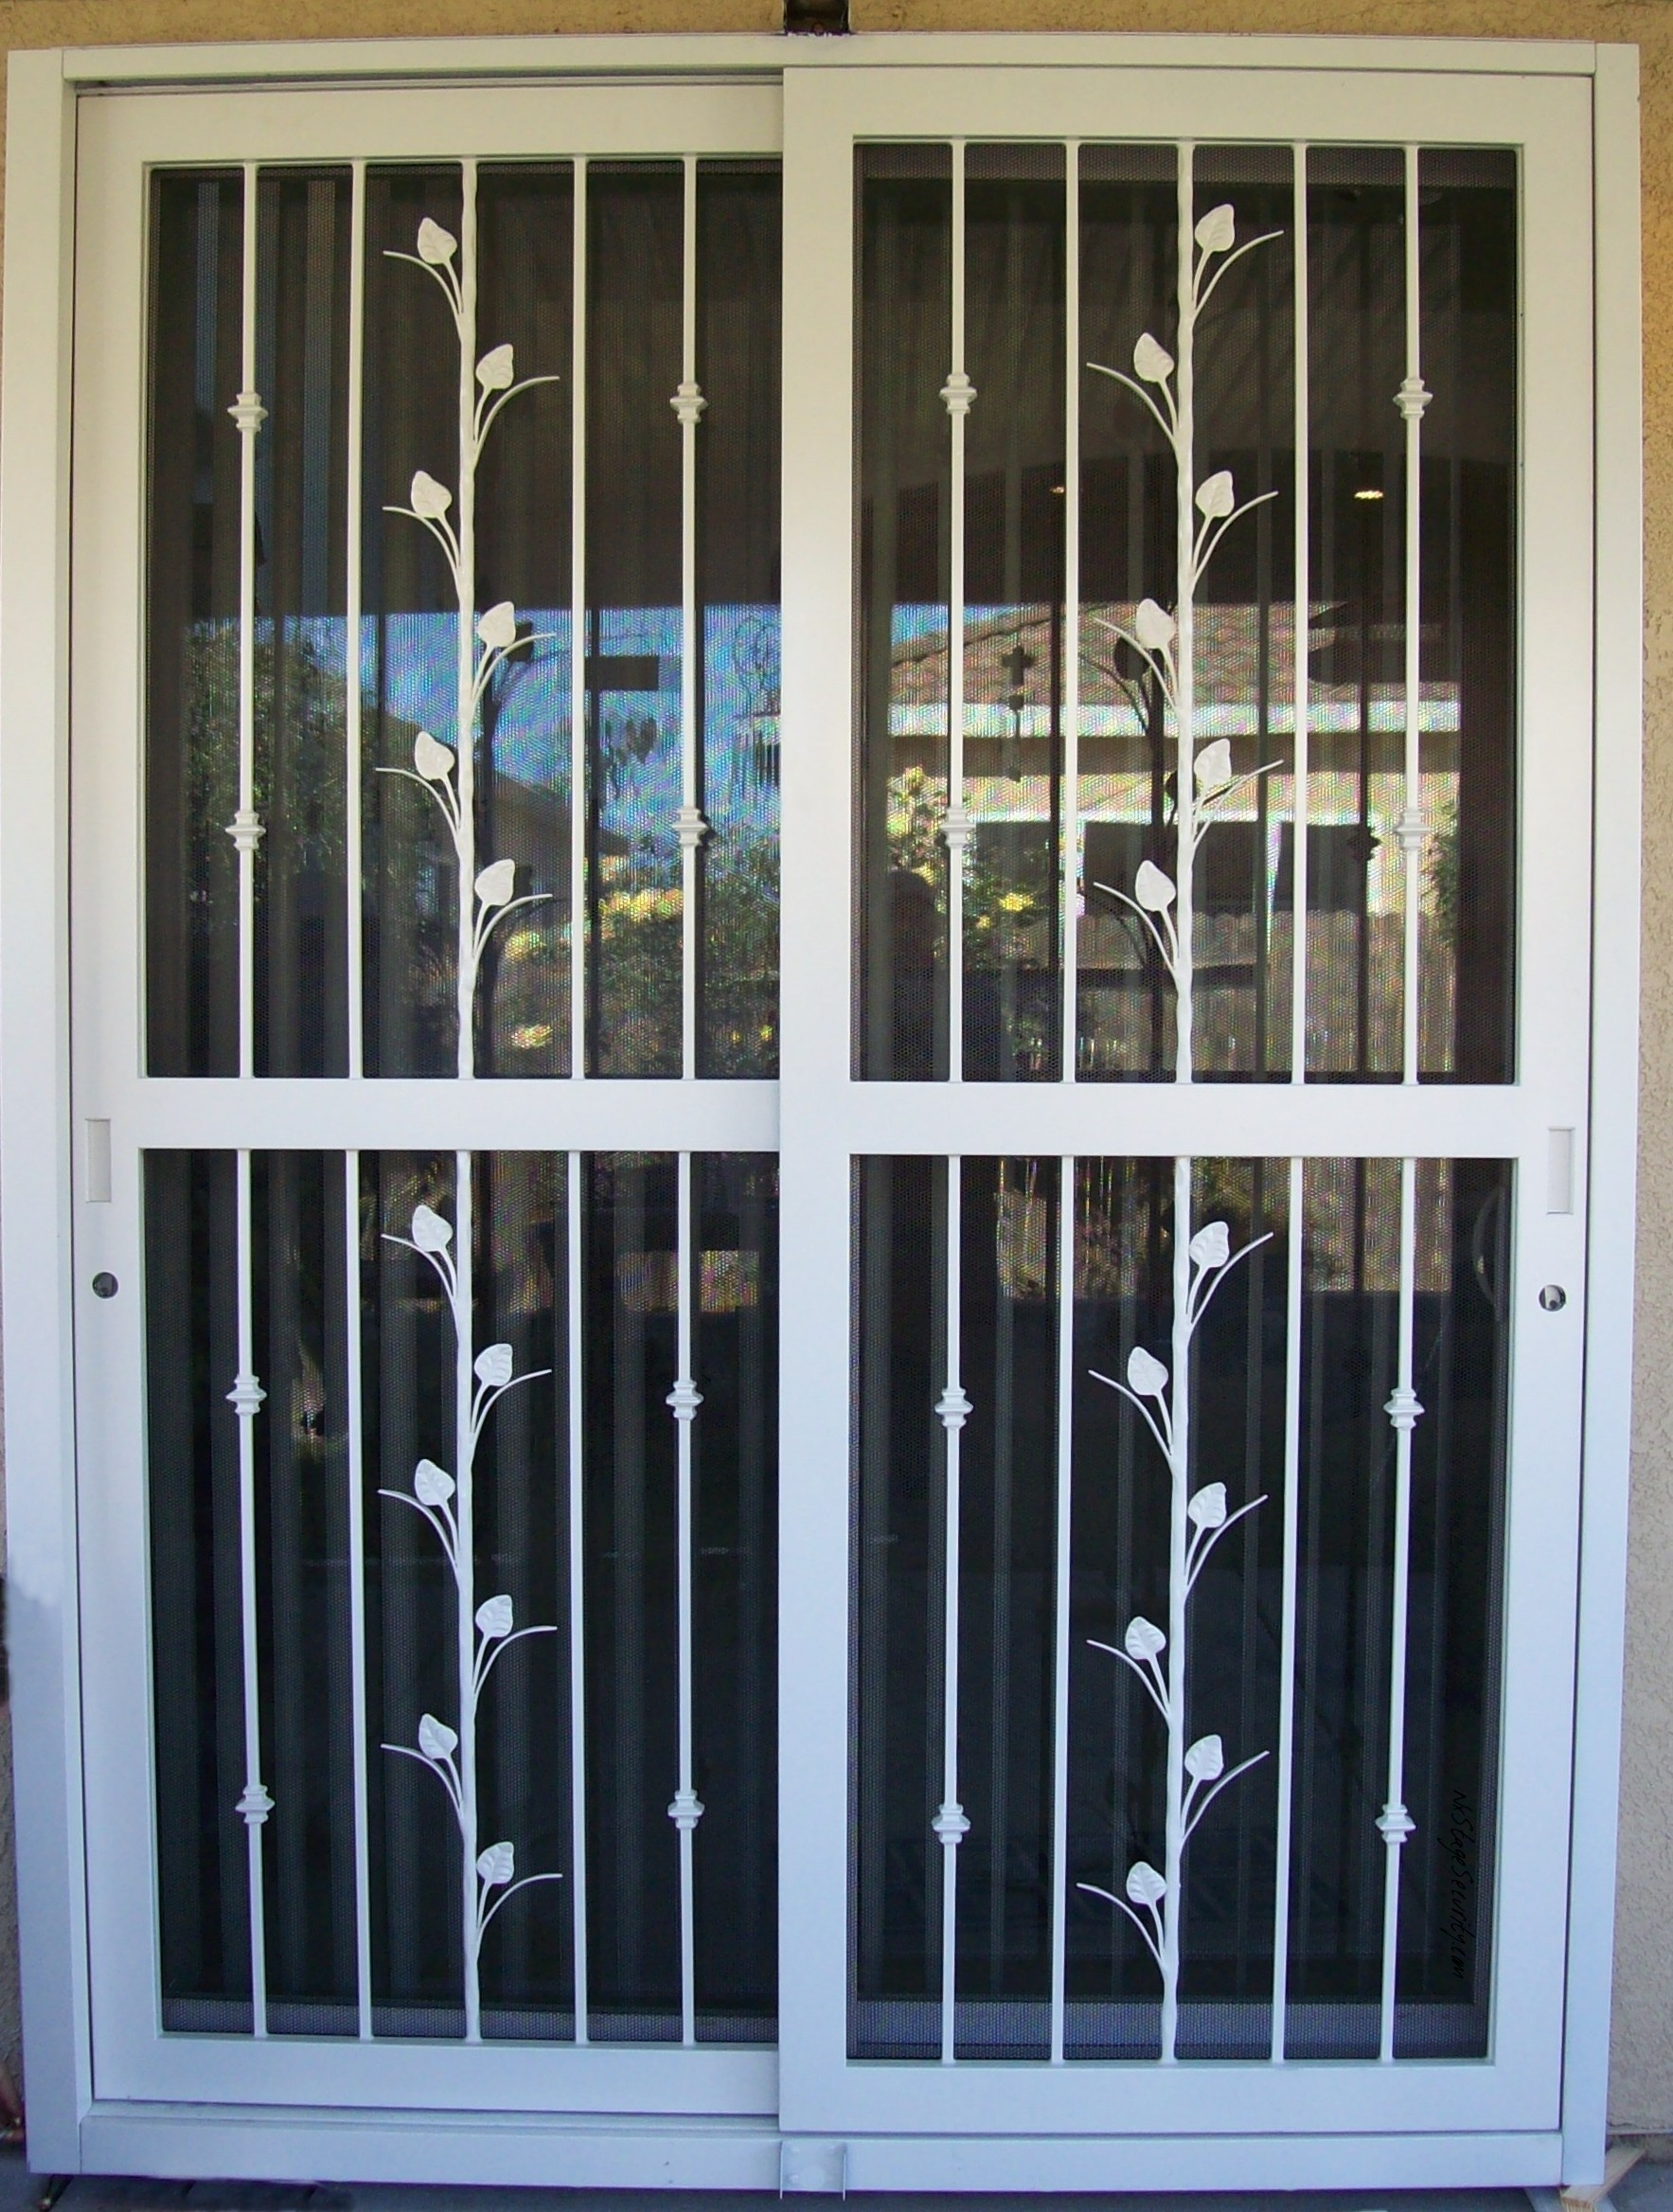 Sliding Glass Door Security Screenssliding glass doors and windows are aesthetically pleasing because